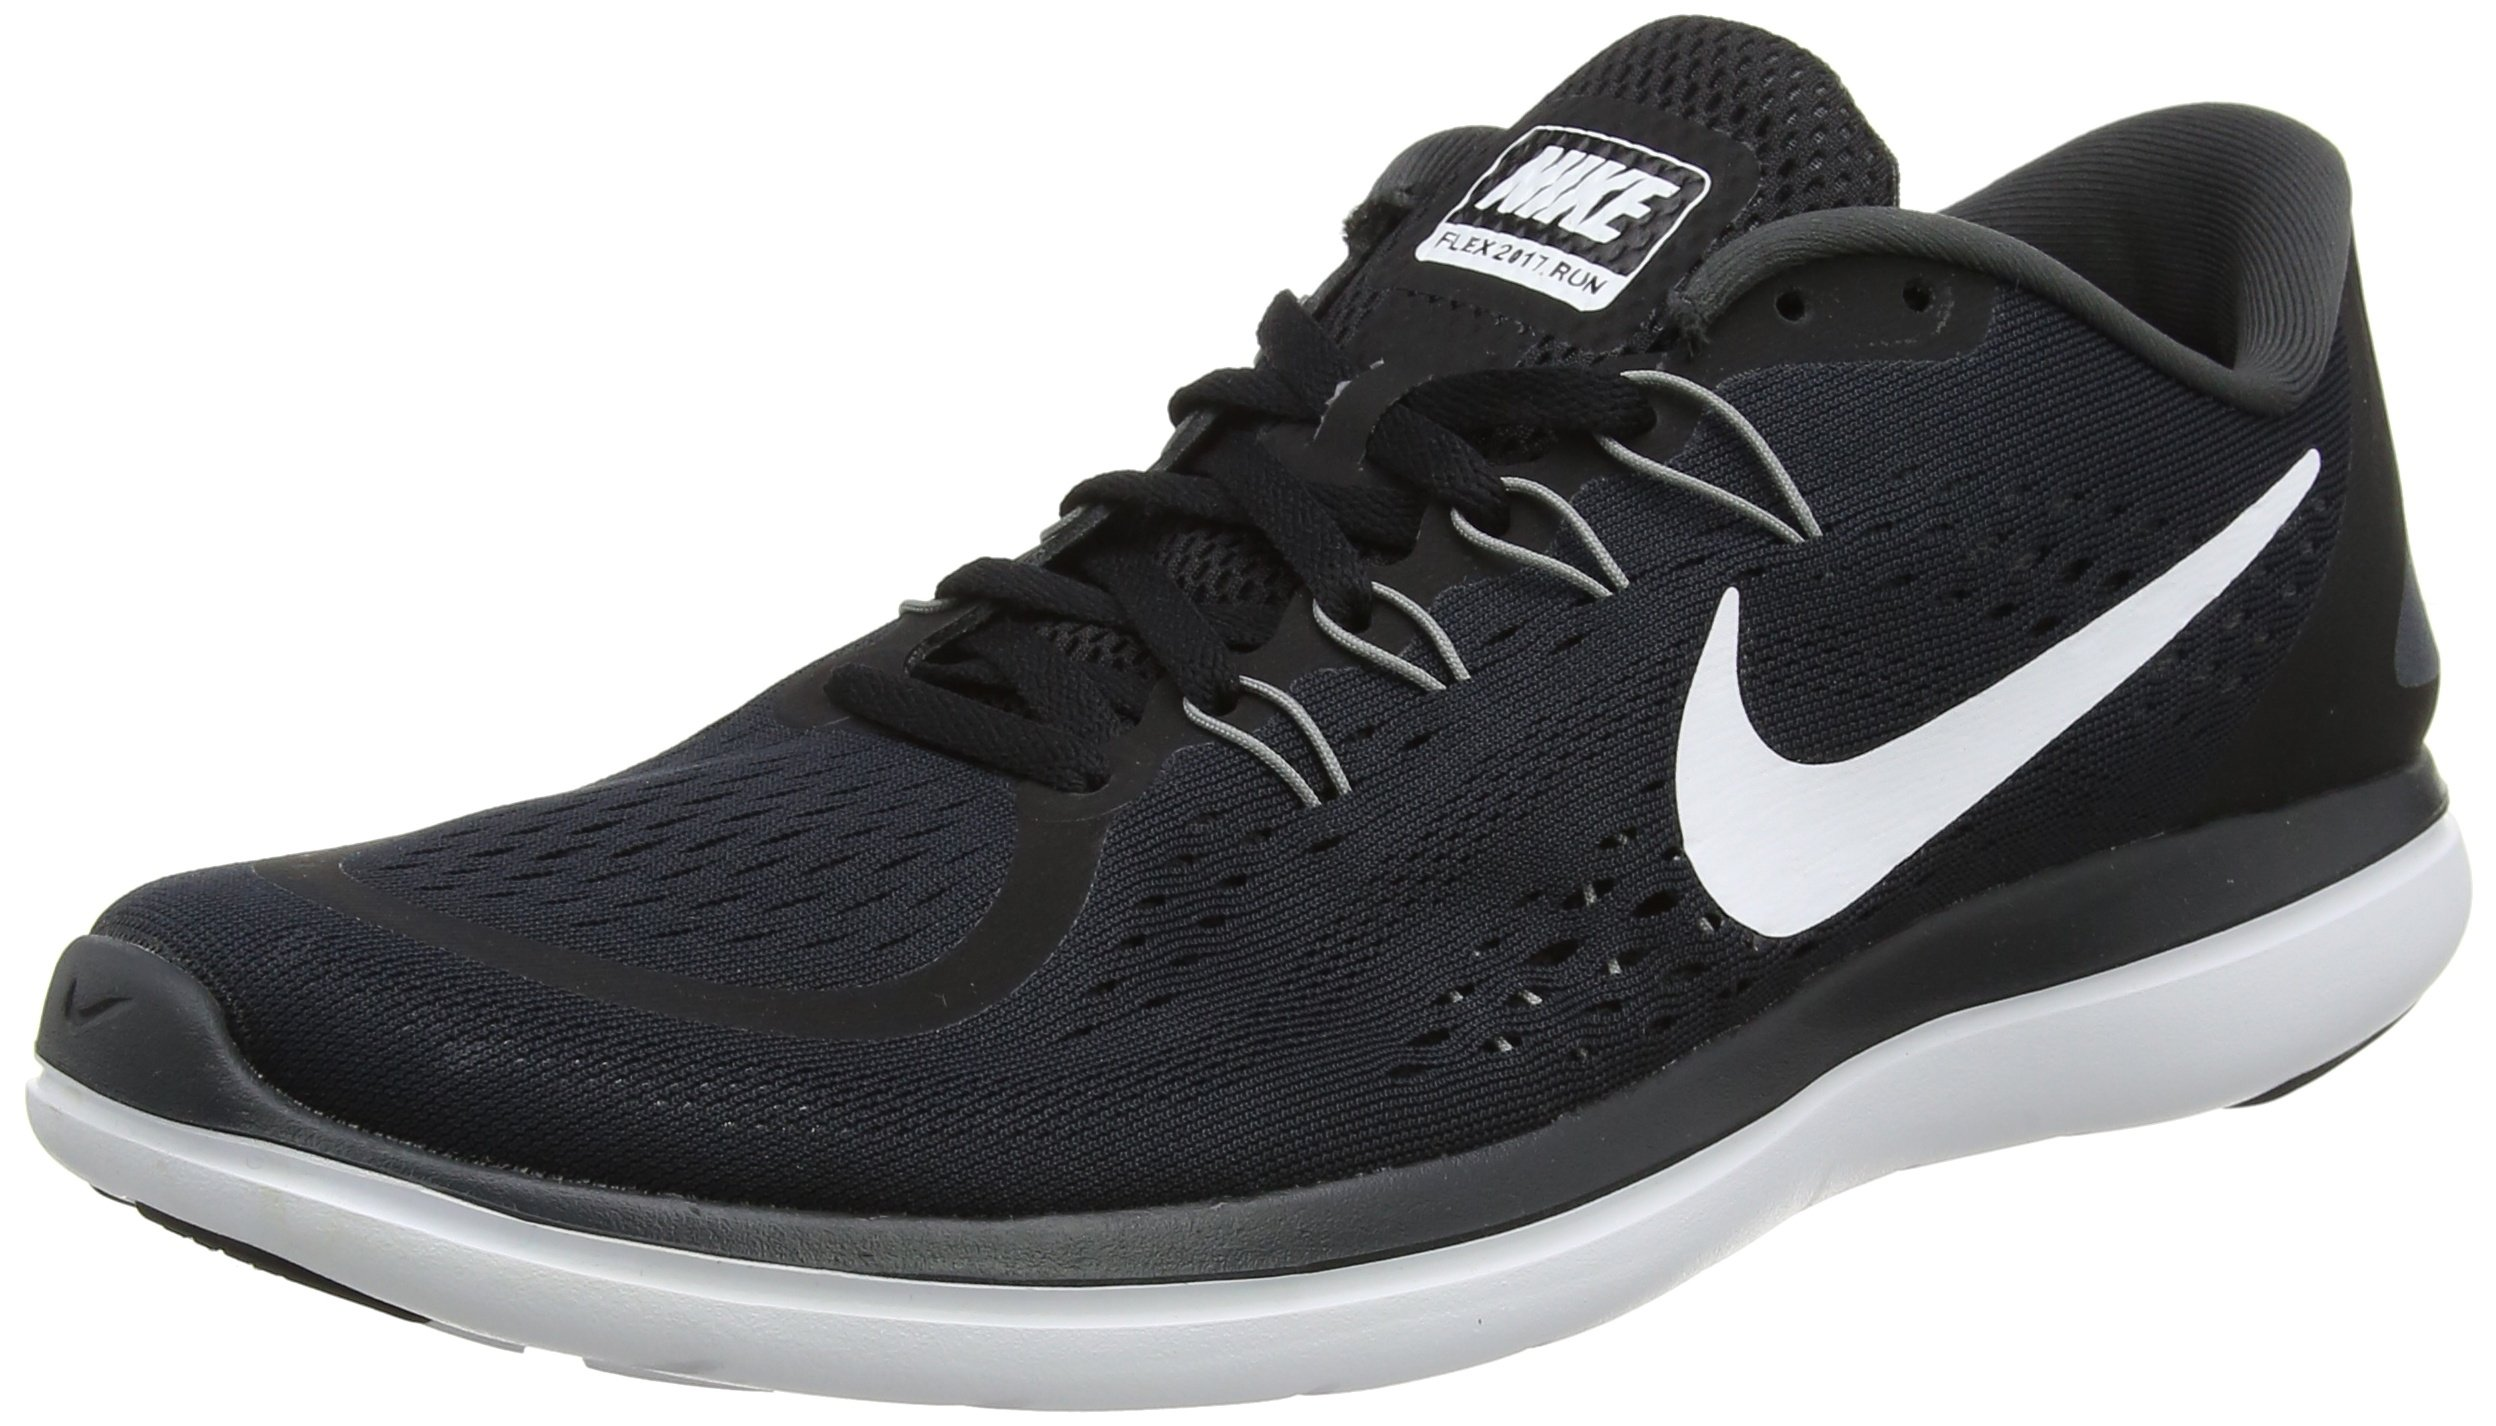 Nike Mens Flex 2017 RN Running Shoes Black/White/Anthracite/Cool Grey 9.5 D(M) US by NIKE